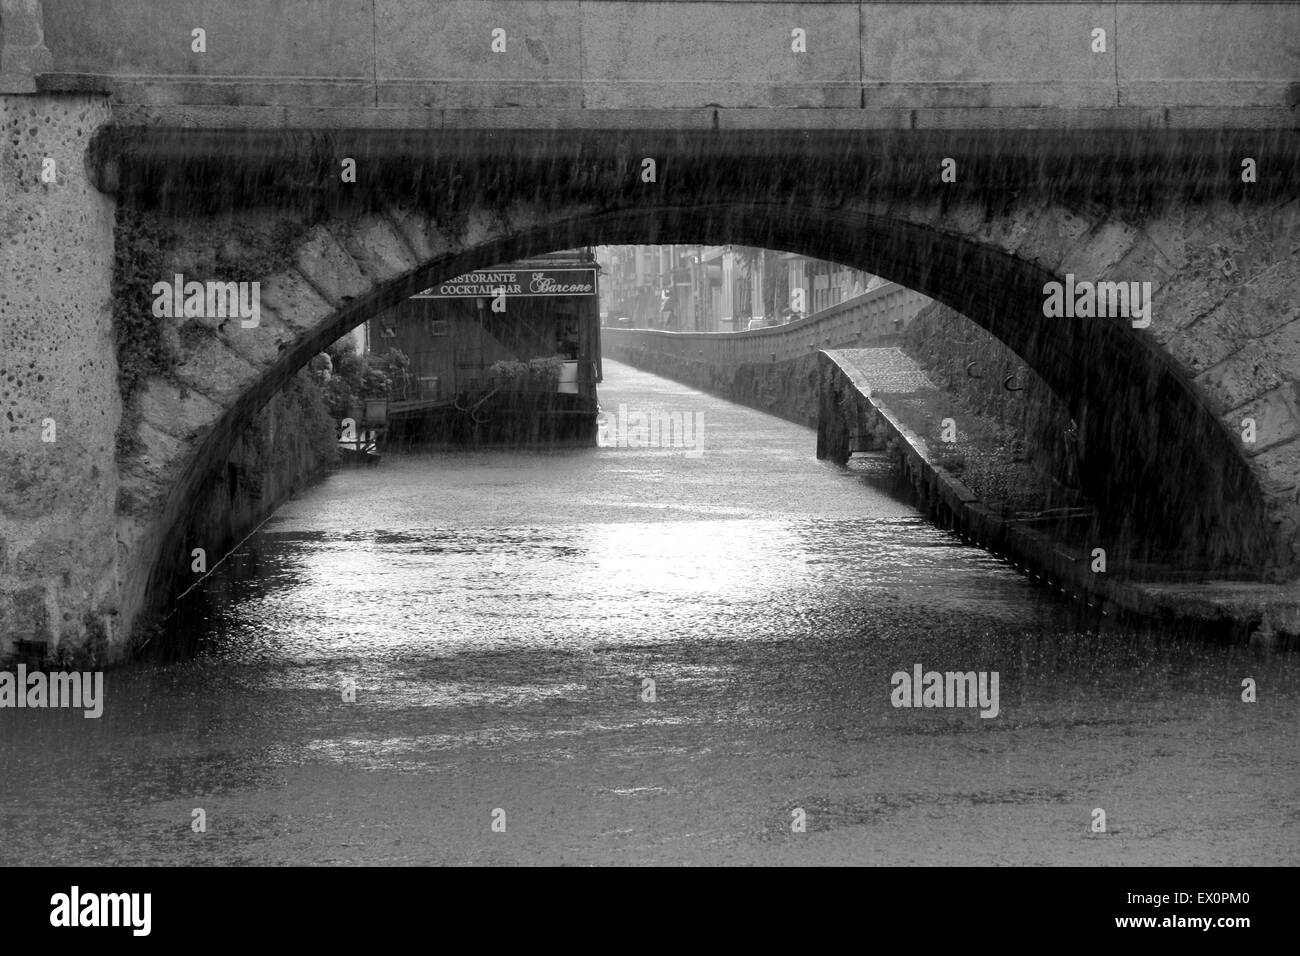 Bridge over the Naviglio canal in Milan, Italy - Stock Image